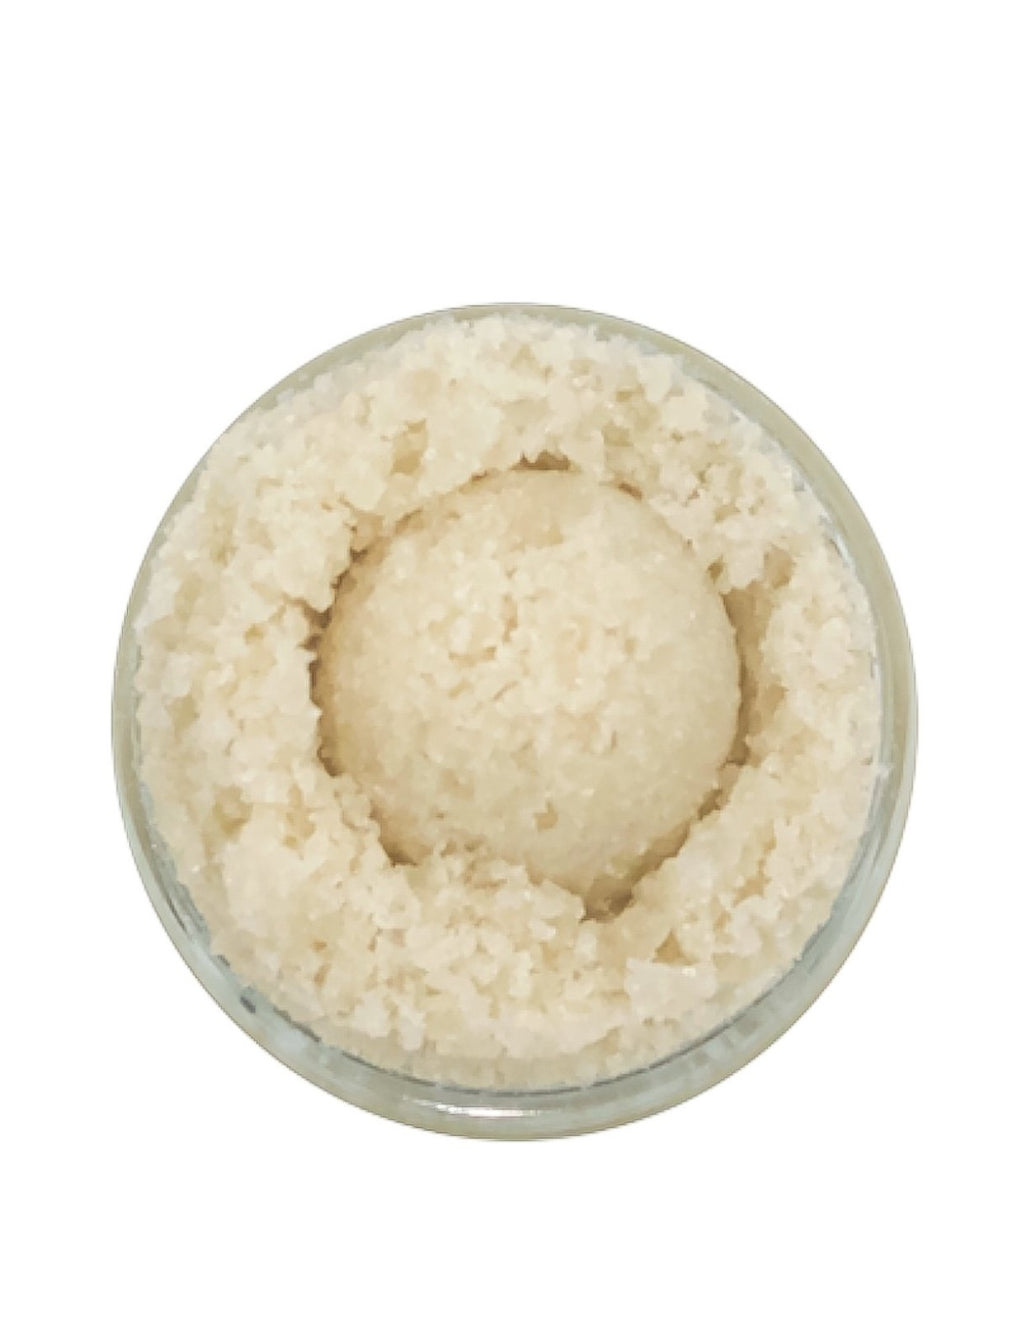 Brown Sugar + Vanilla Bean Exfoliating Sugar Body Polish